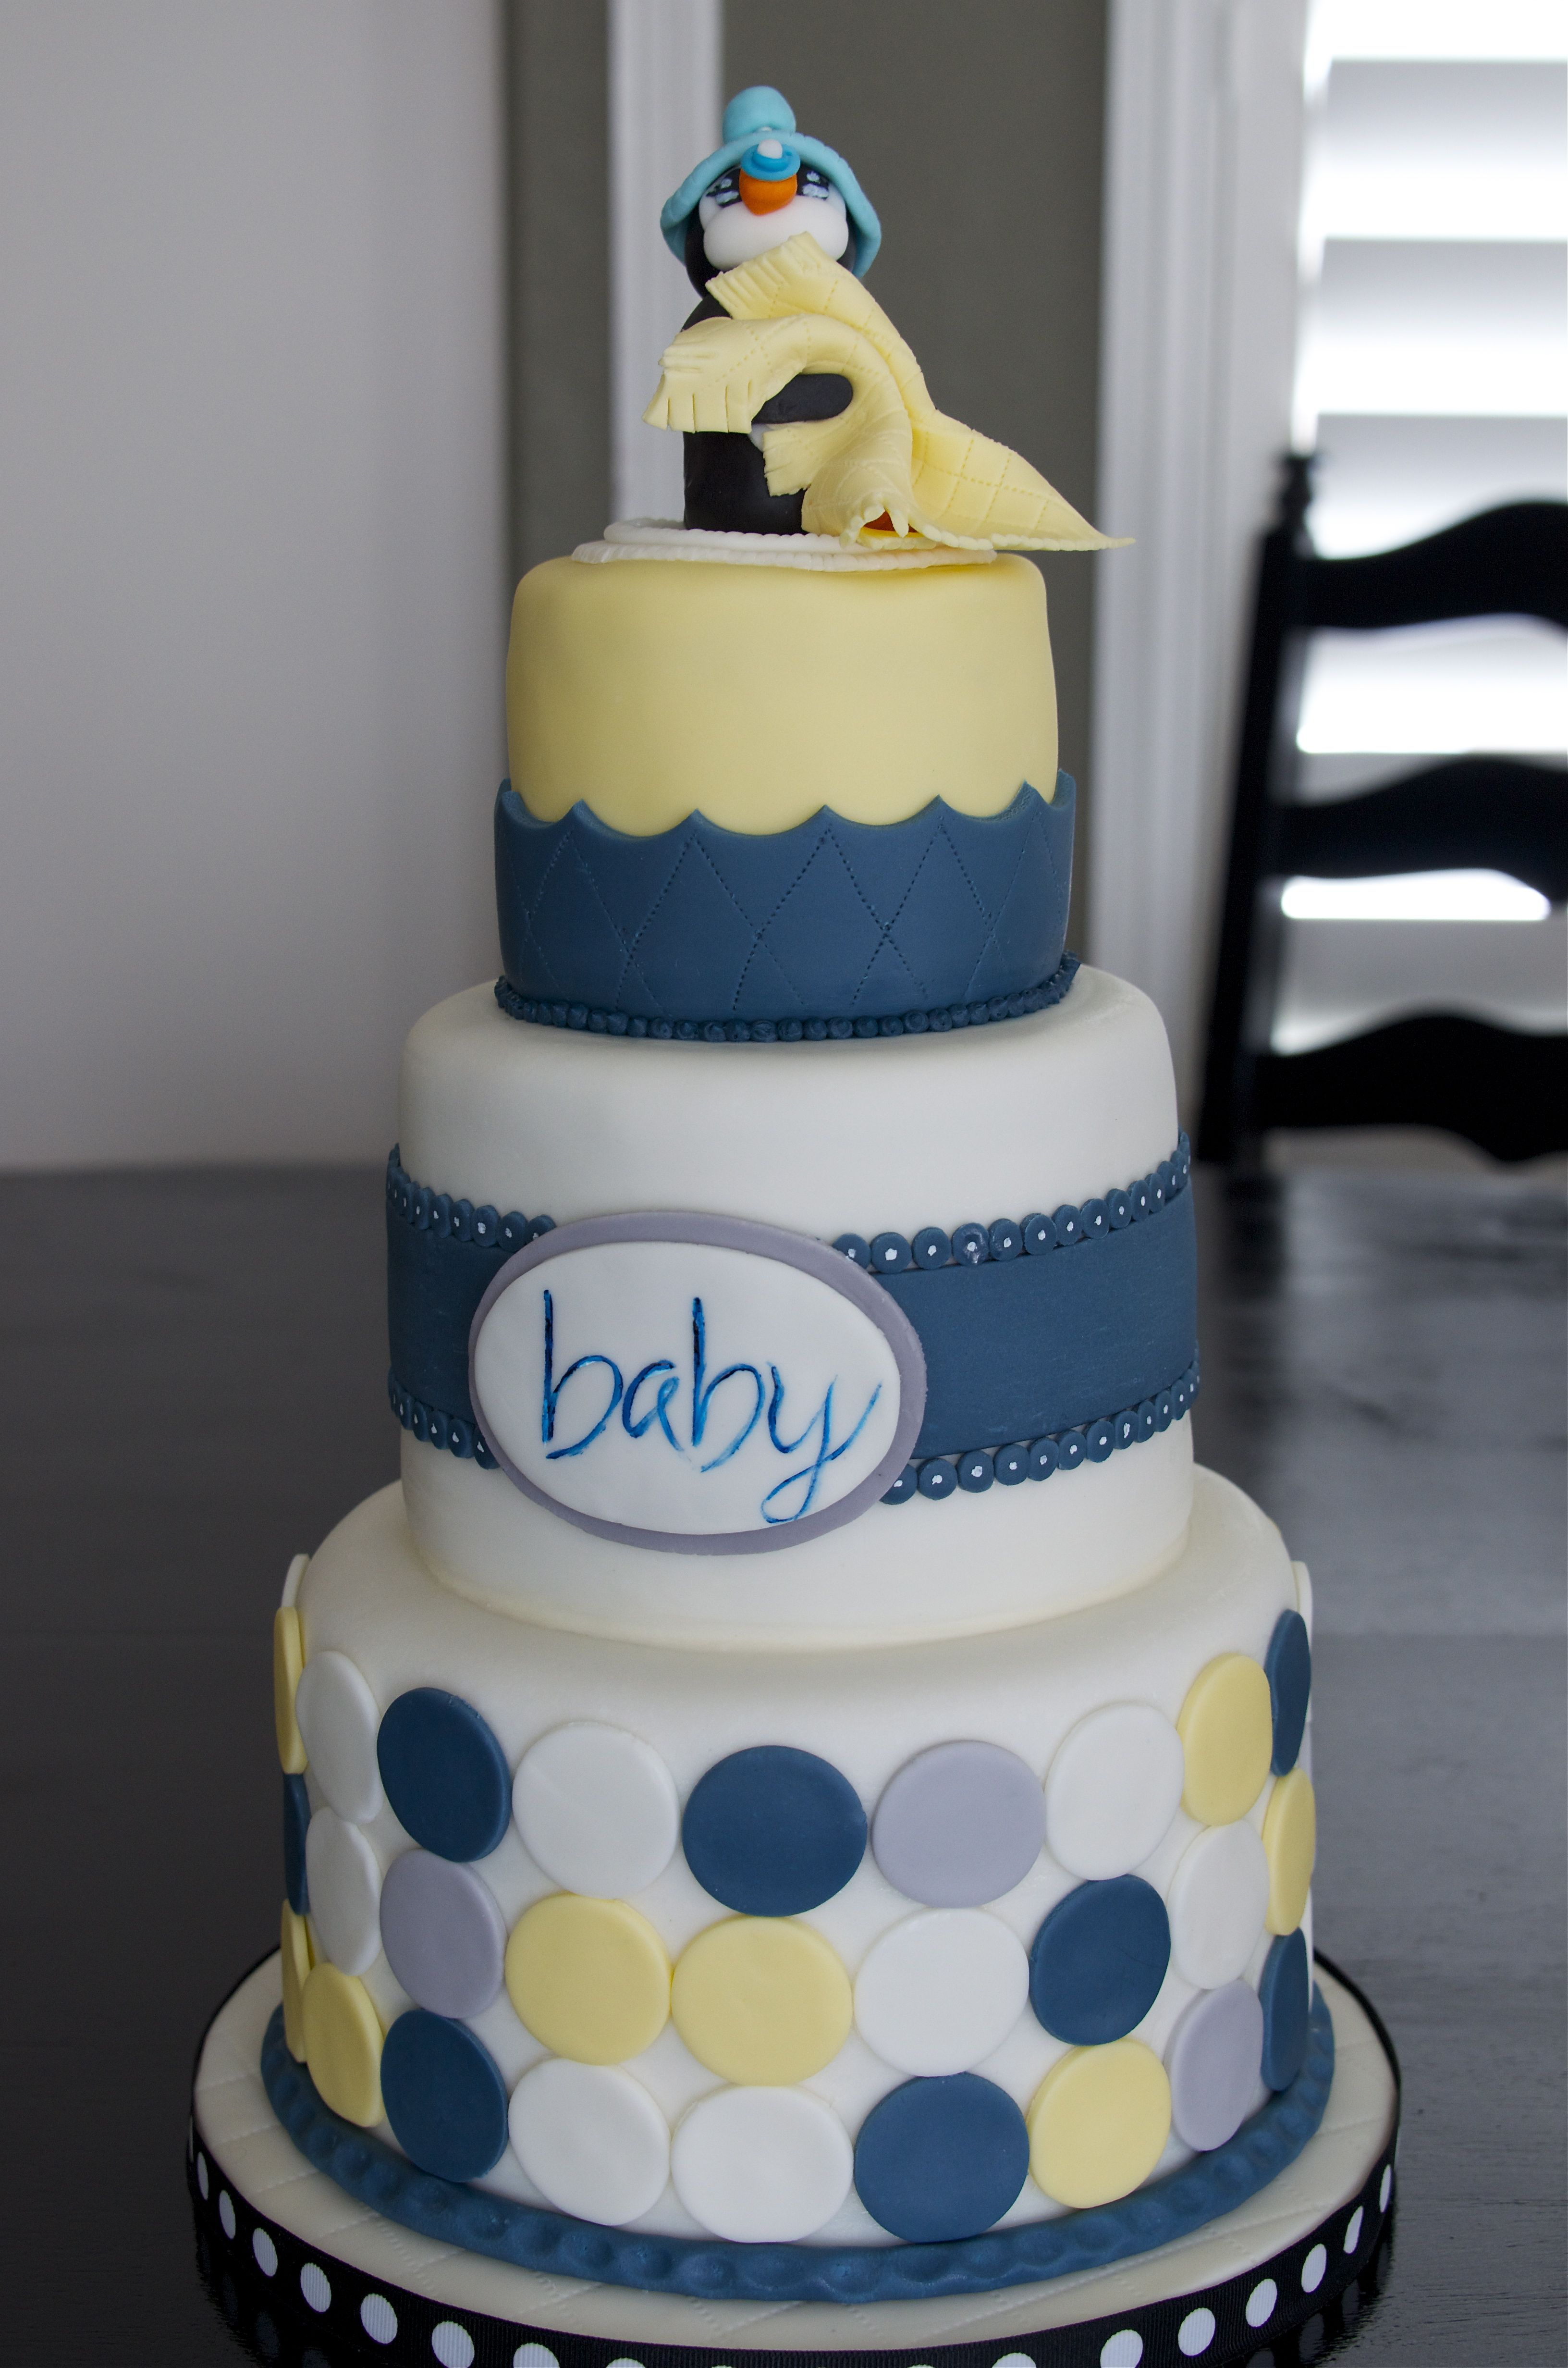 Baby Shower Baby Shower Cake Nursery Colors Are Navy Blue